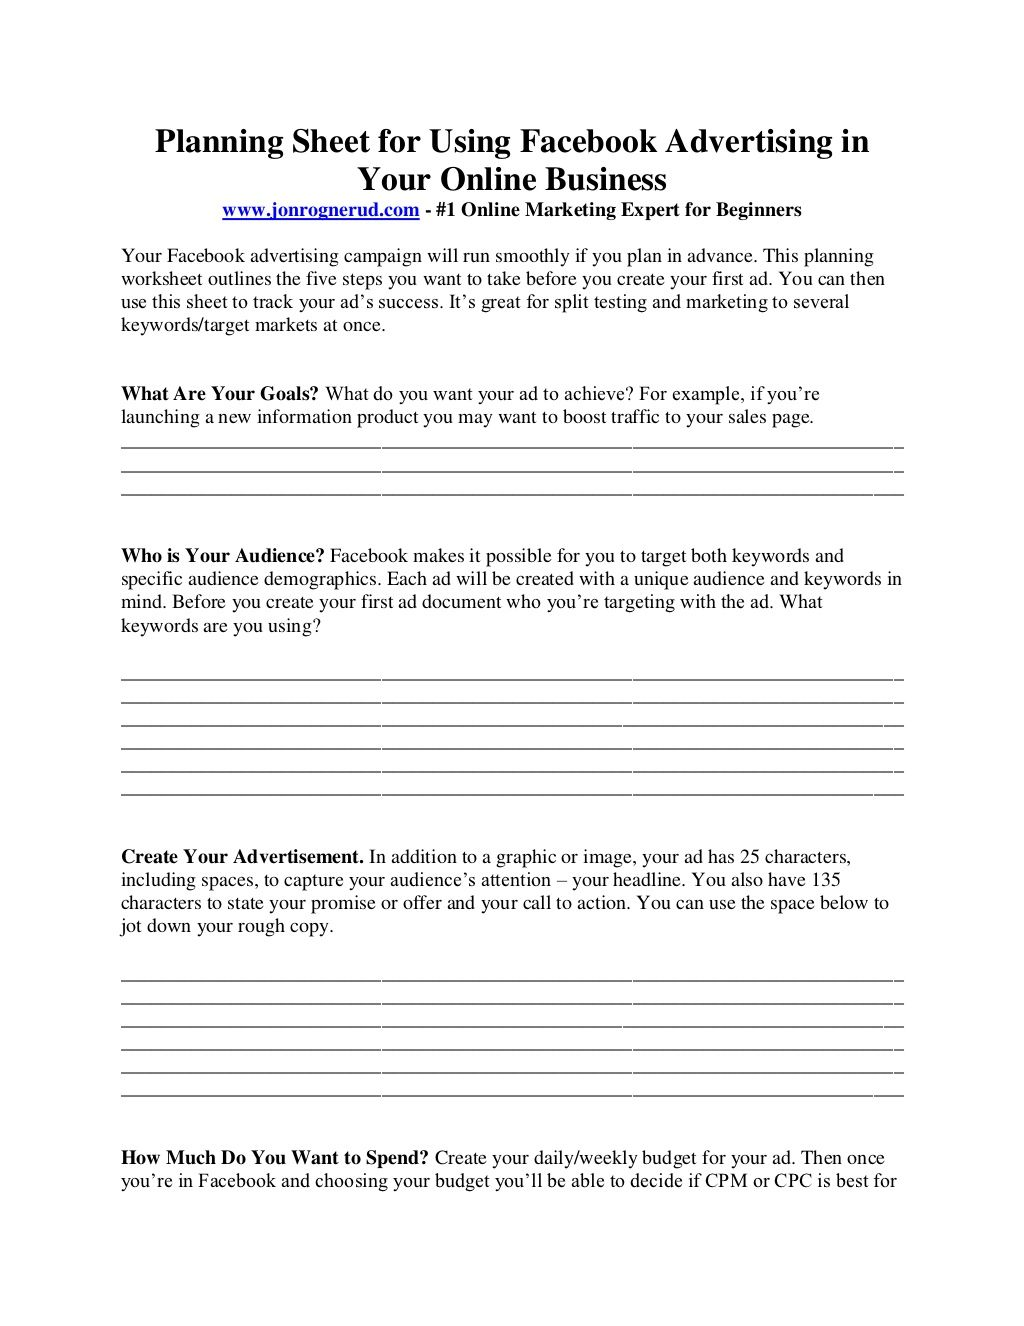 Facebook Ads Planning Worksheet For Small Business Middle School Books Book Report Templates Middle School